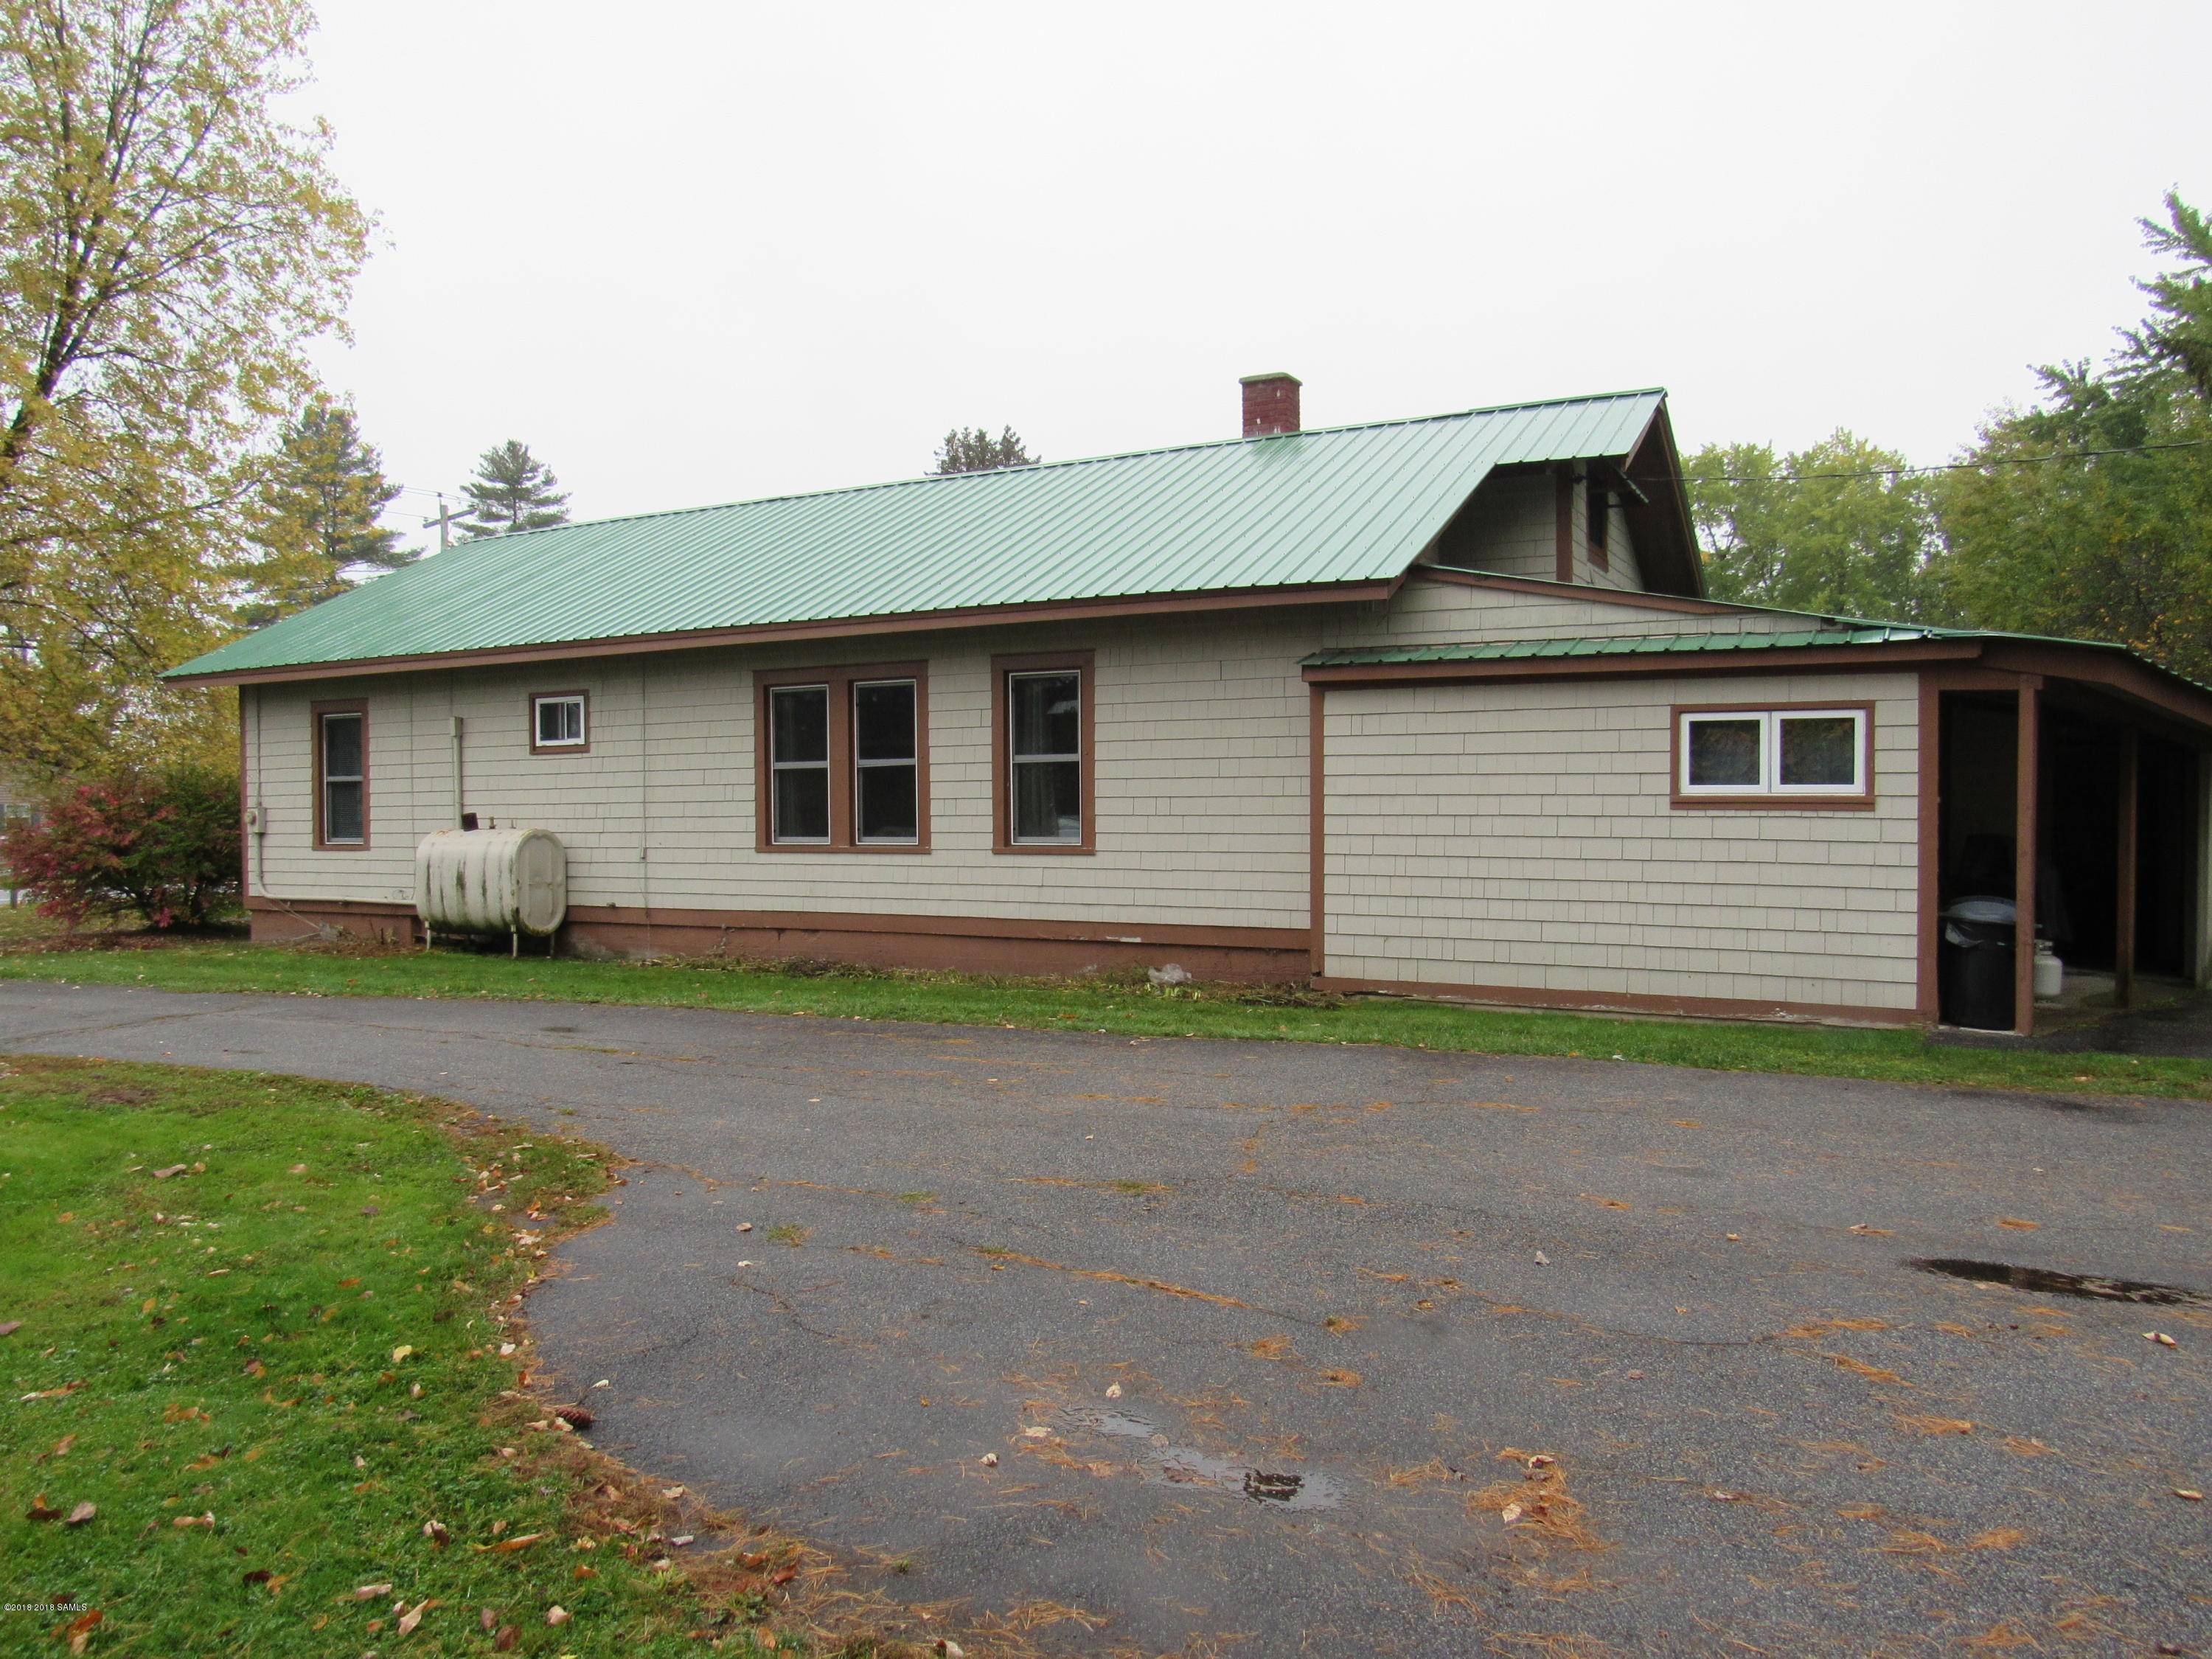 967 State Route 9, Schroon NY 12870 photo 14